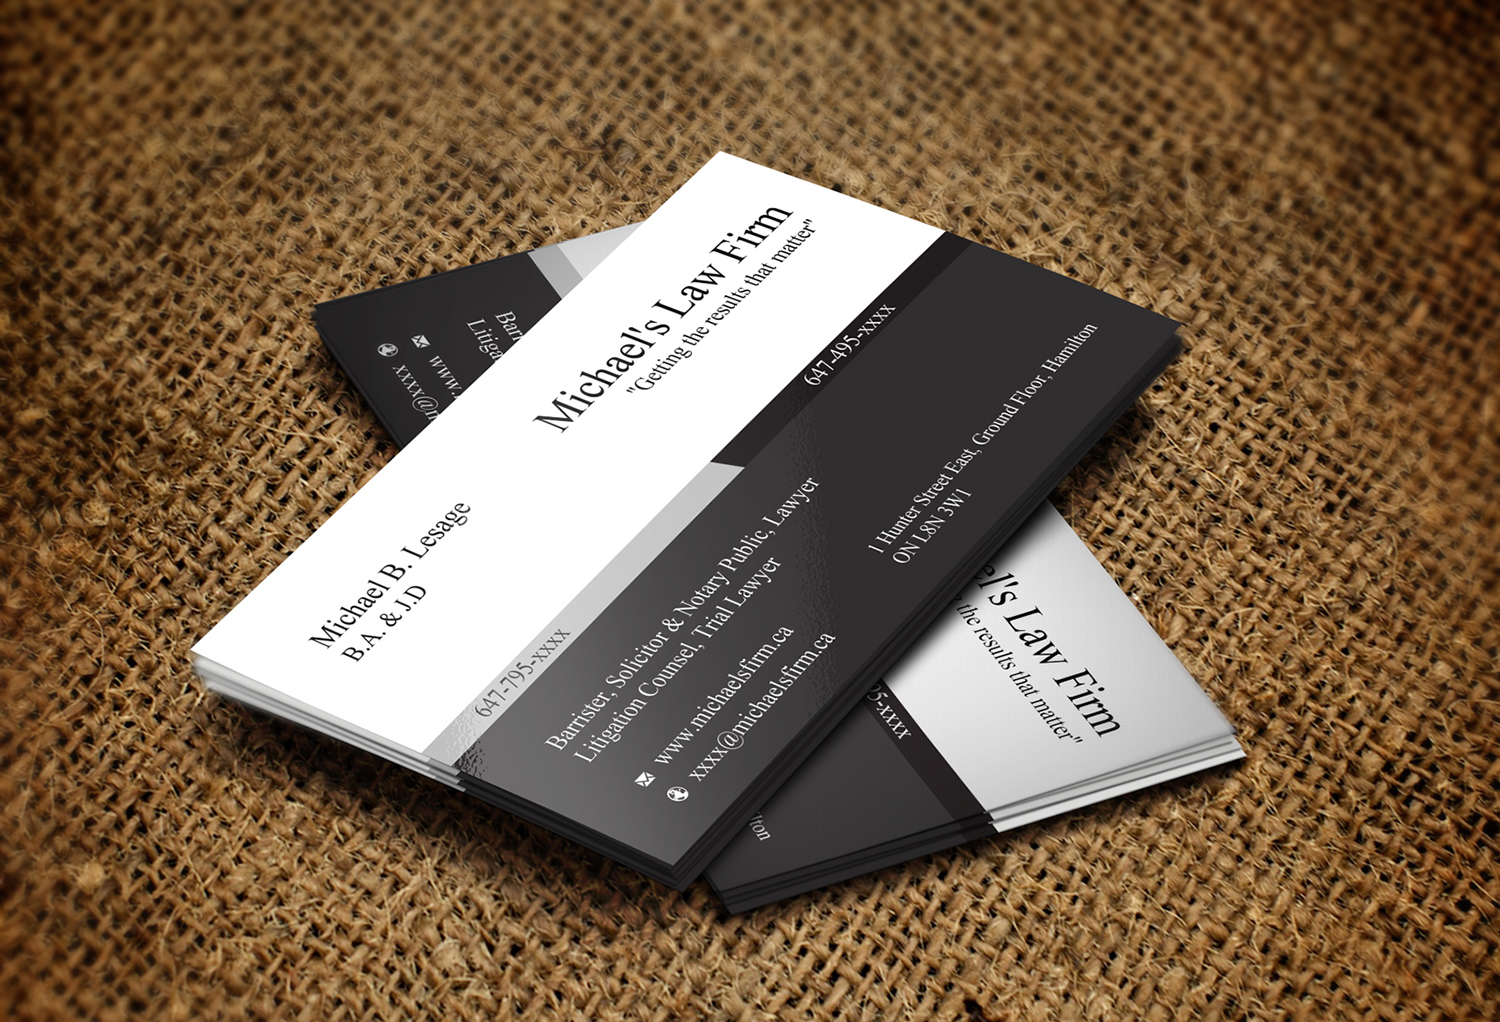 Elegant playful business business card design for michaels law business card design by creation lanka for michaels law firm design reheart Image collections